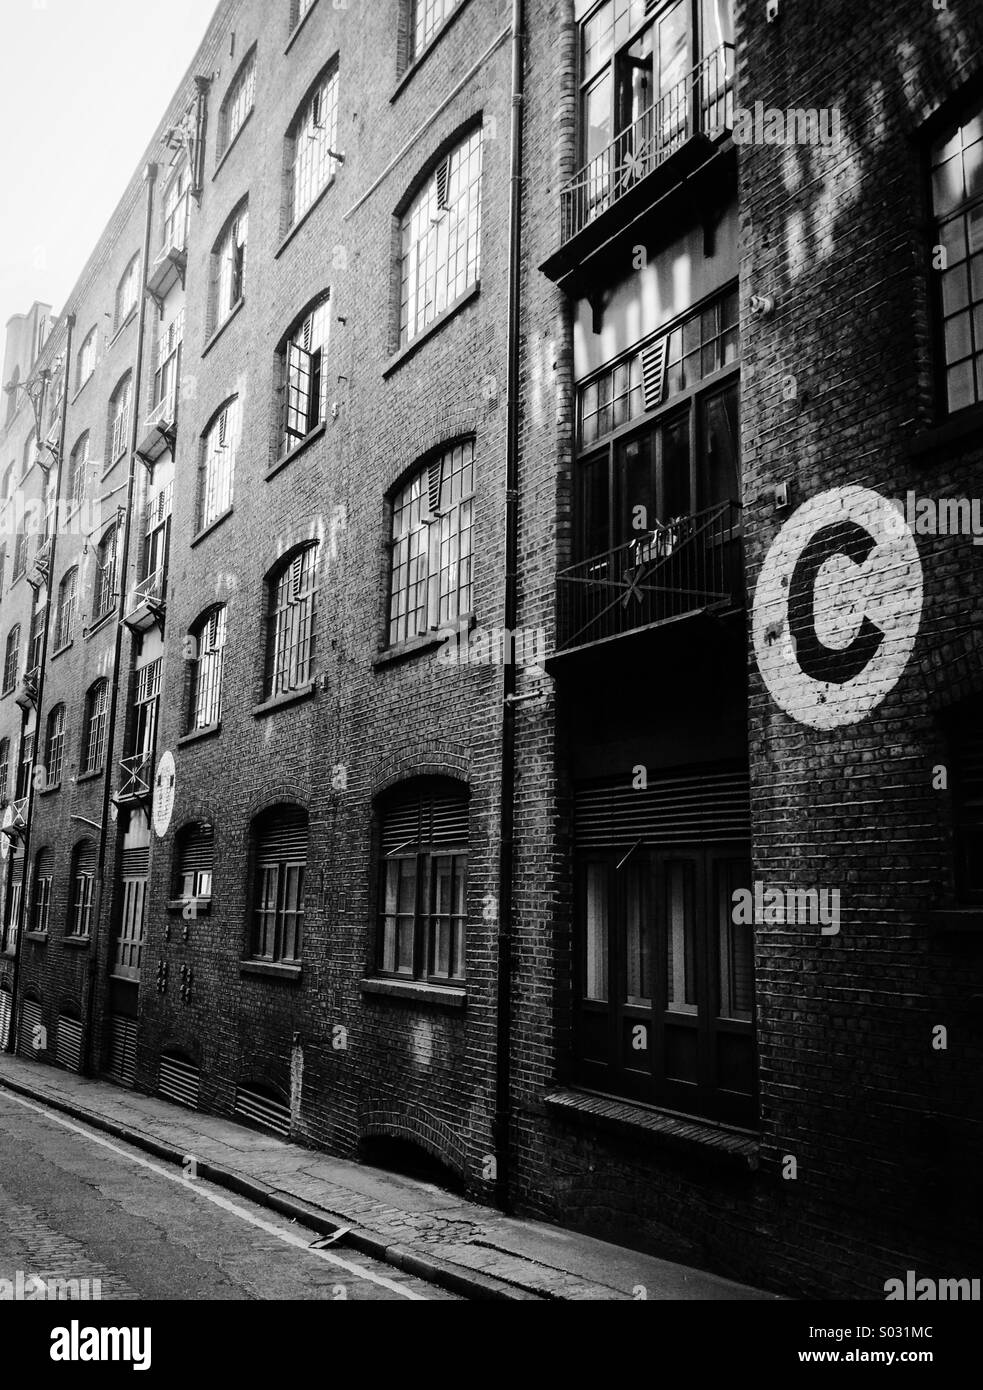 Victorian London docklands warehouse, now flats - Stock Image